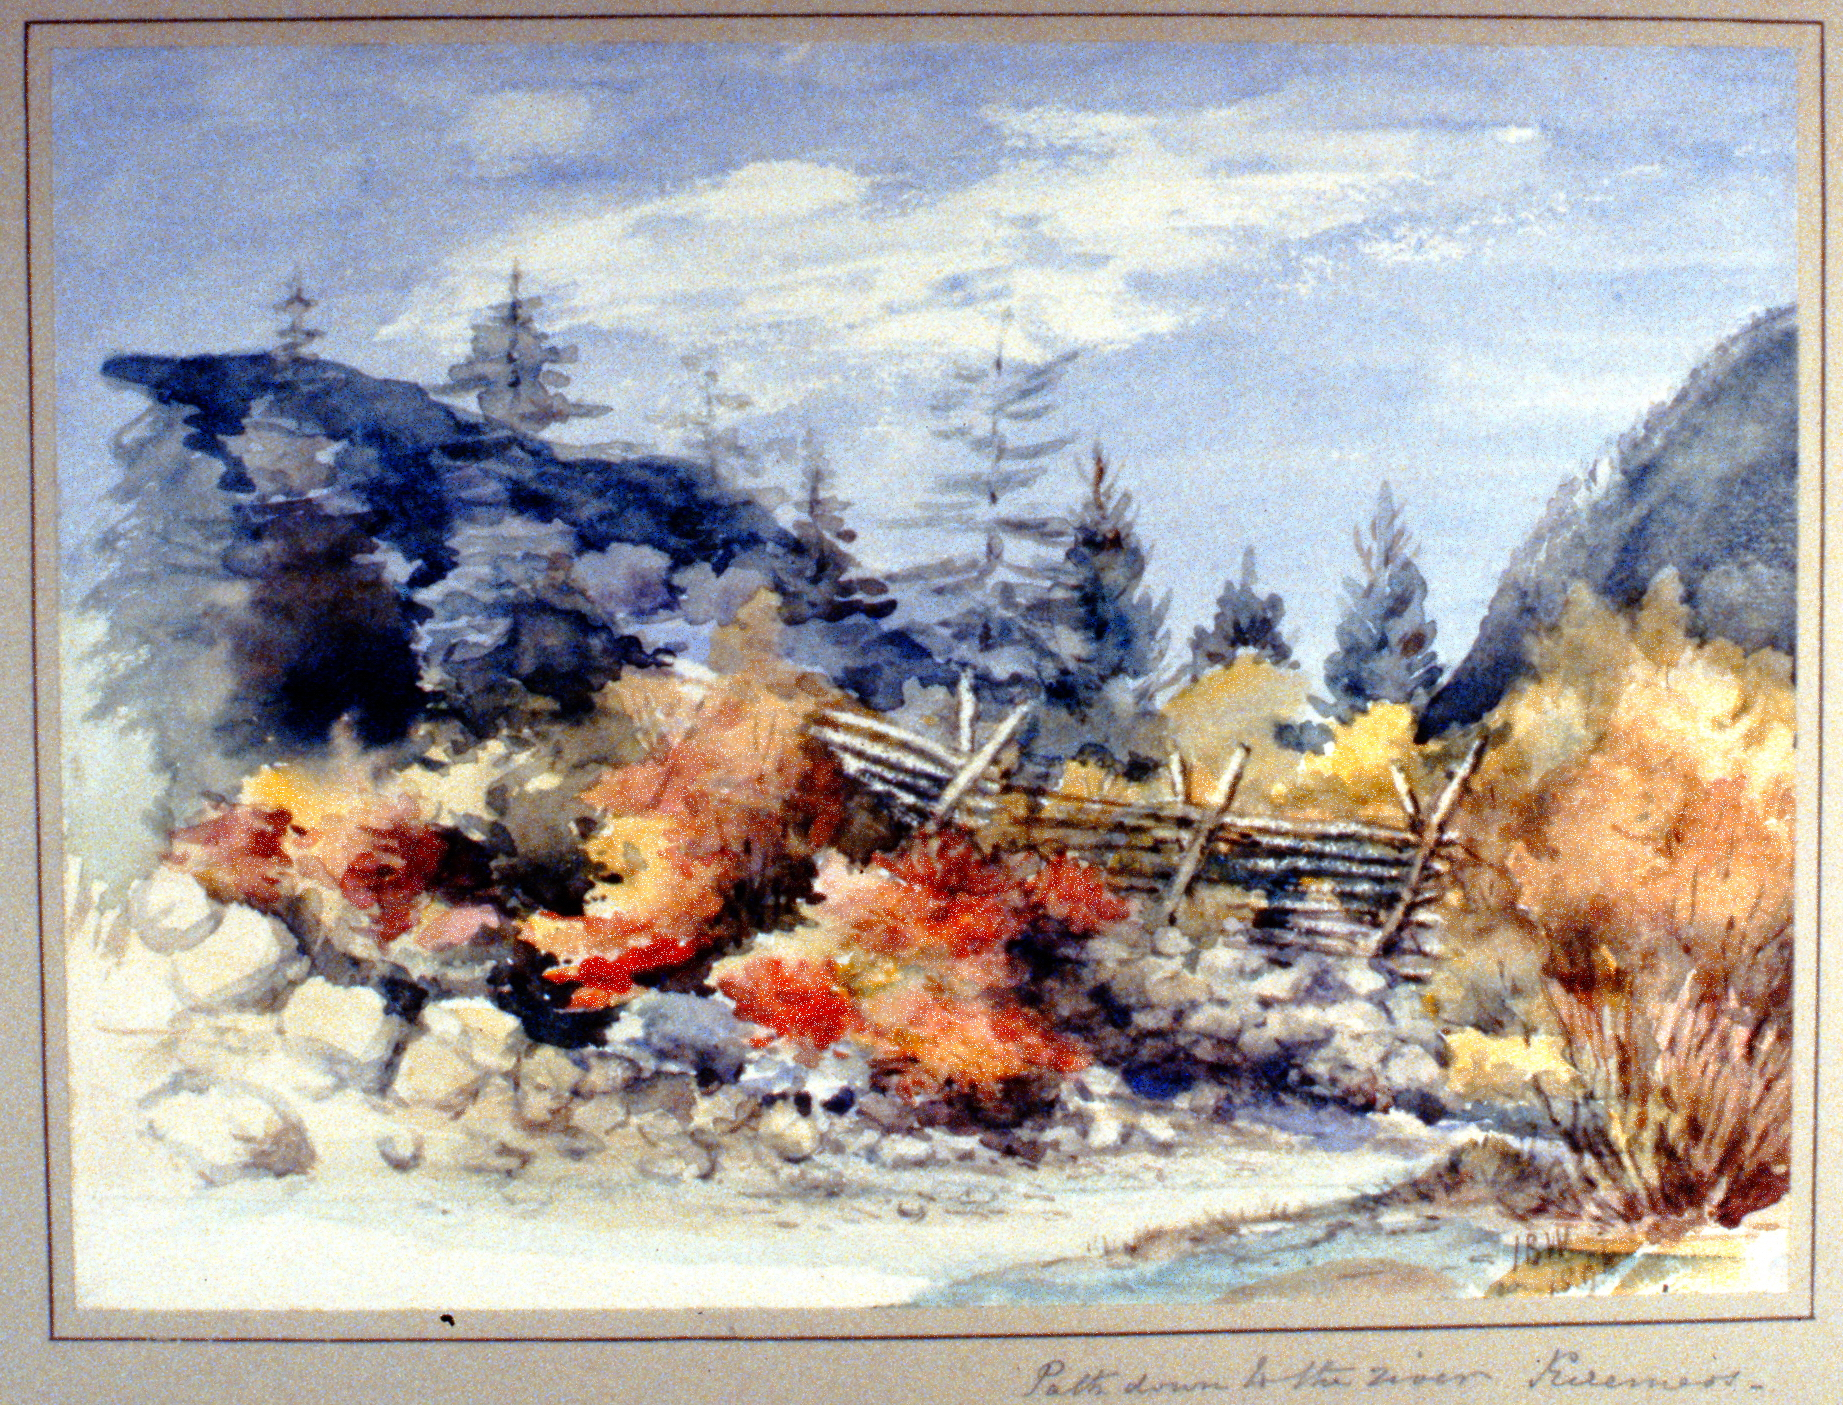 Path Down to the River, Keremeos , 1895, Julia Bullock-Webster, watercolour on paper, 22 x 30.1 cm, 1983.02.05. Gift of Mrs. Barbara Steel.